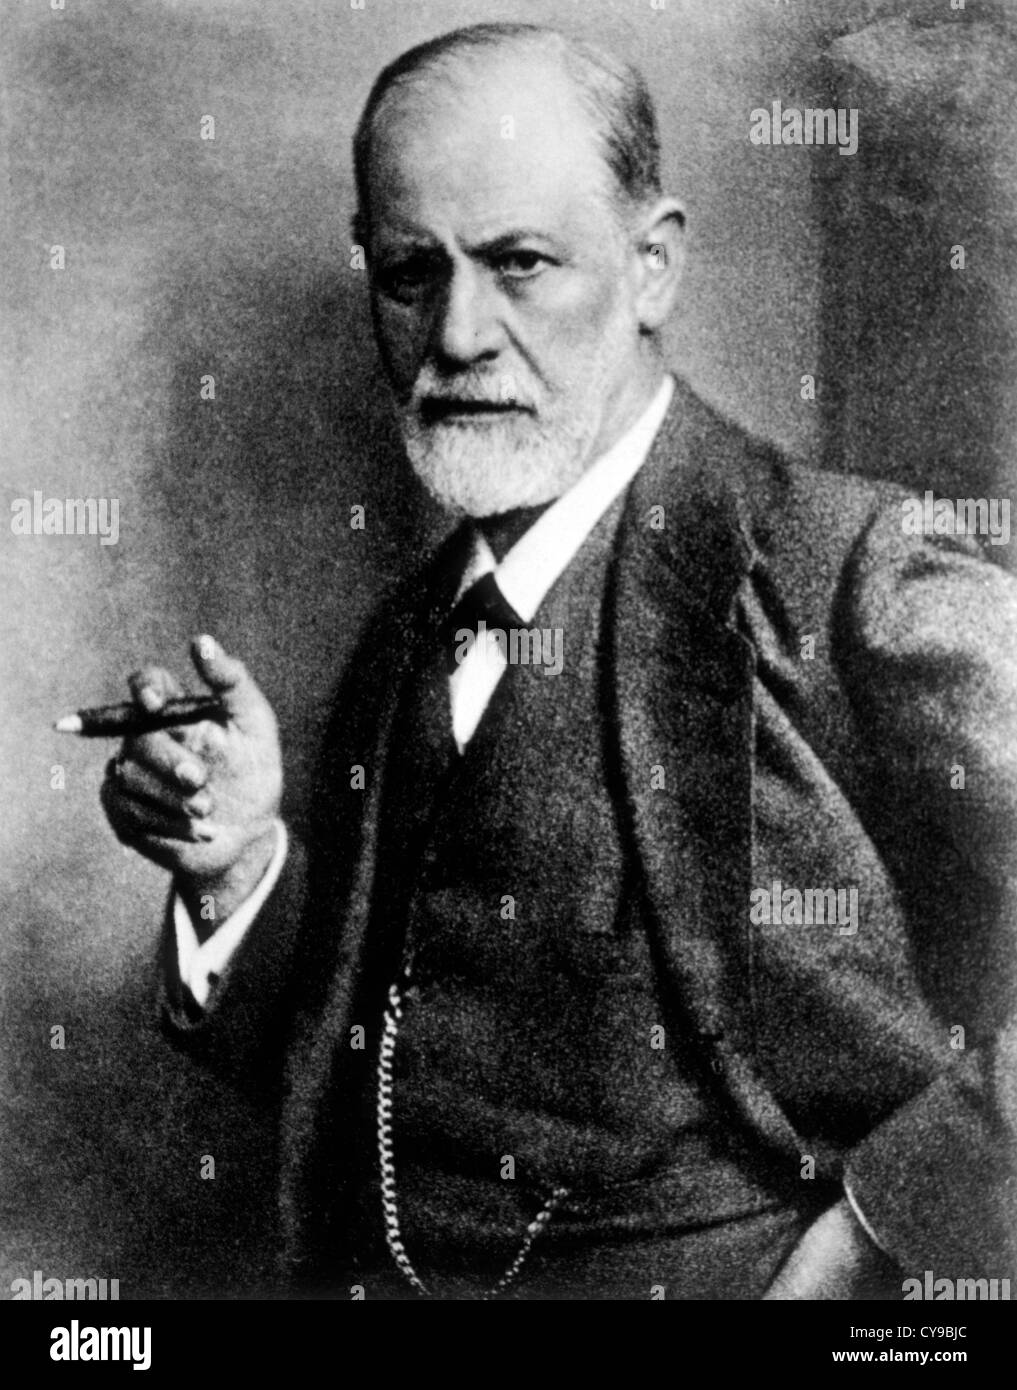 an introduction to the theory by sigmund freud Sigmund freud was arguably the world's first psychoanalyst, pushing forwards psychology and significantly influencing modern-day our understanding of the mind's.